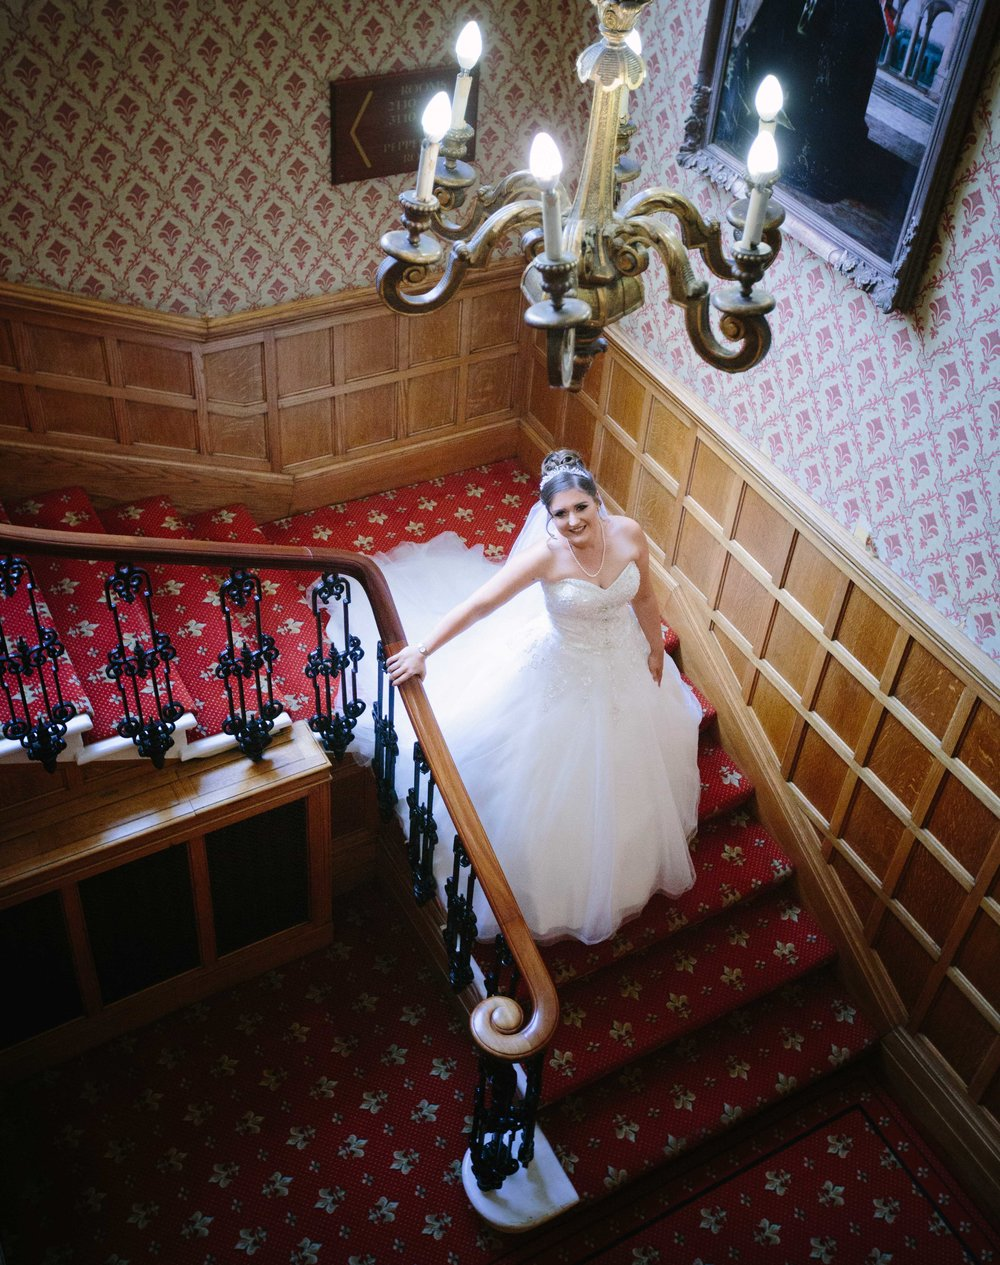 HamptonCourt-Wedding-Weybridge-Surrey-London-OatlandsParkHotel-18